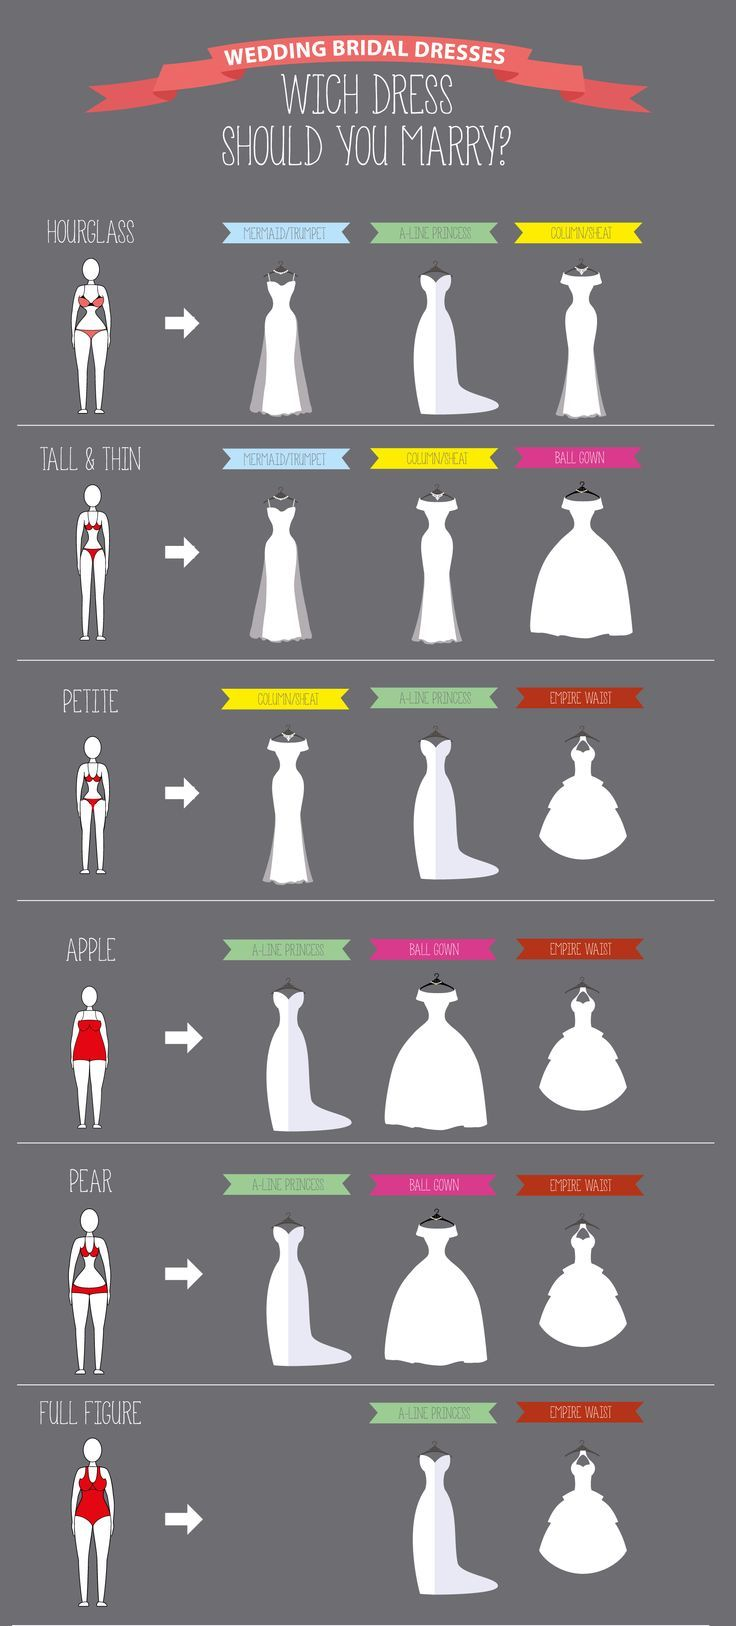 TOP WEDDING DRESS DO'S & DON'TS